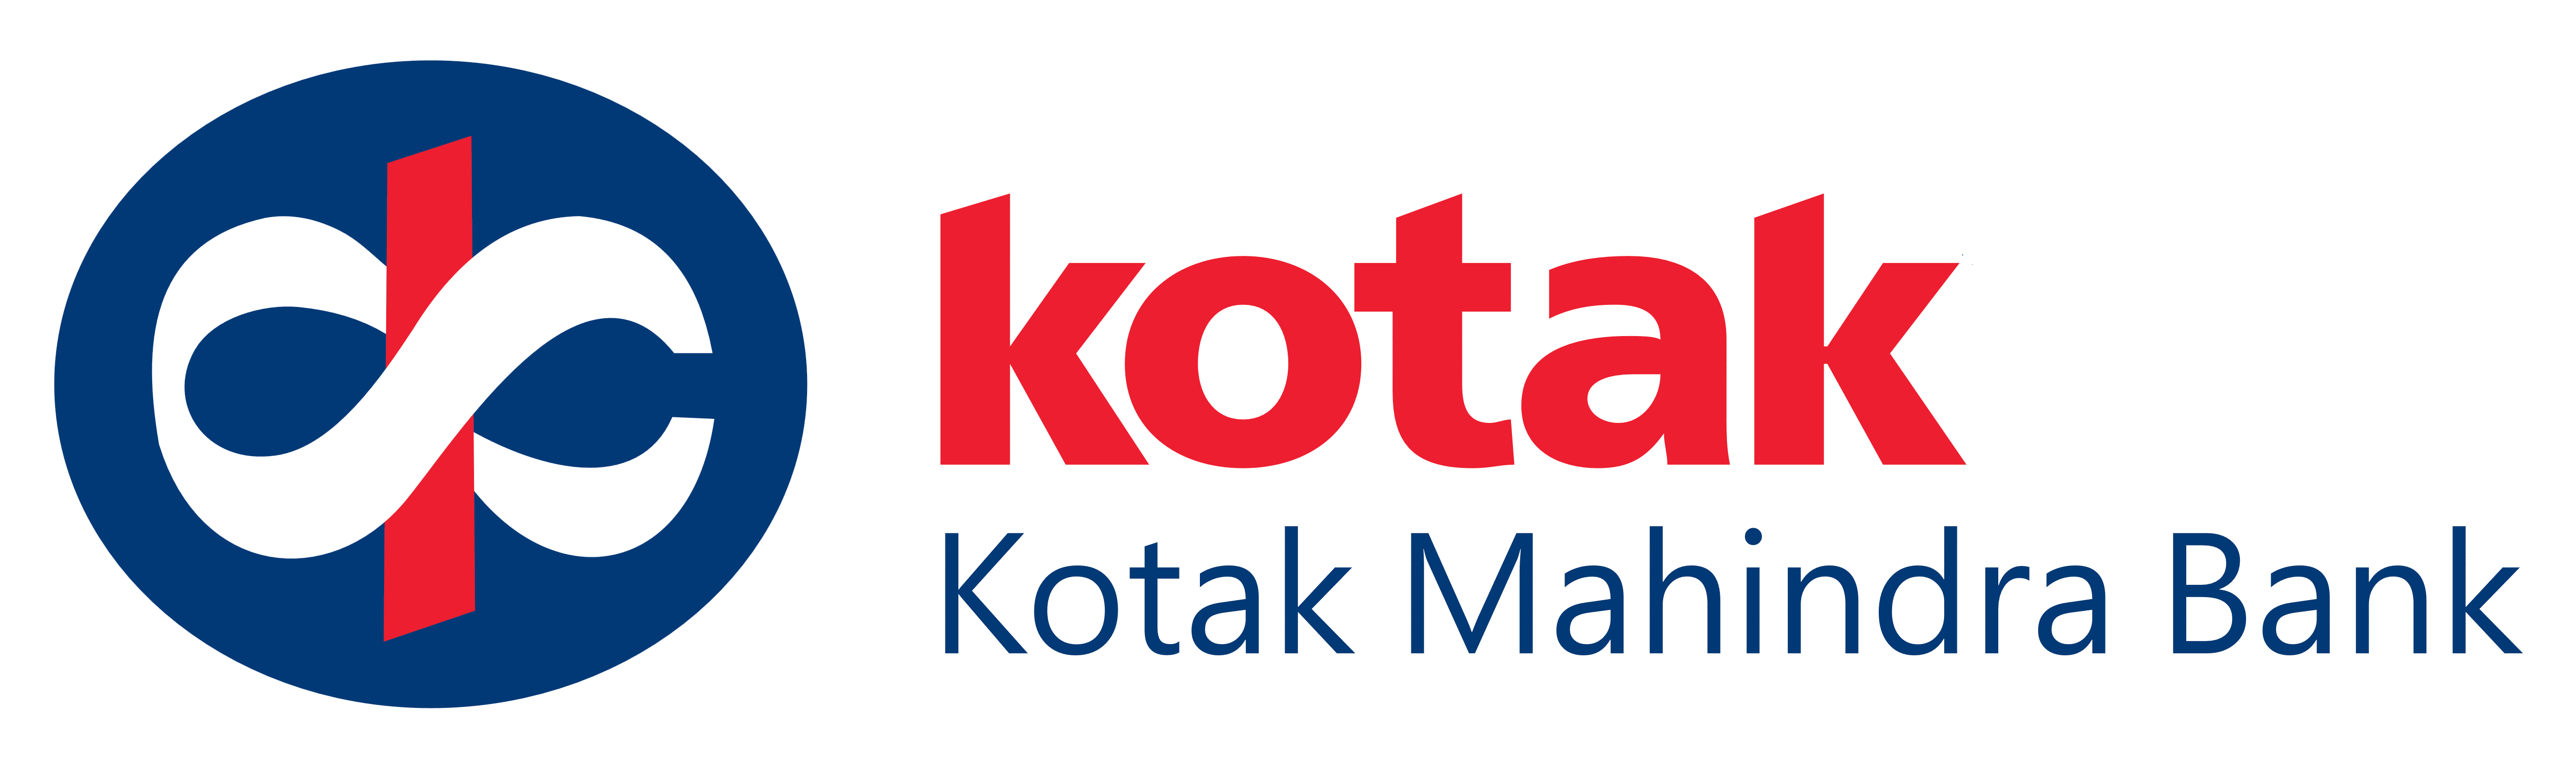 Kotak Mahindra Bank Logos Download